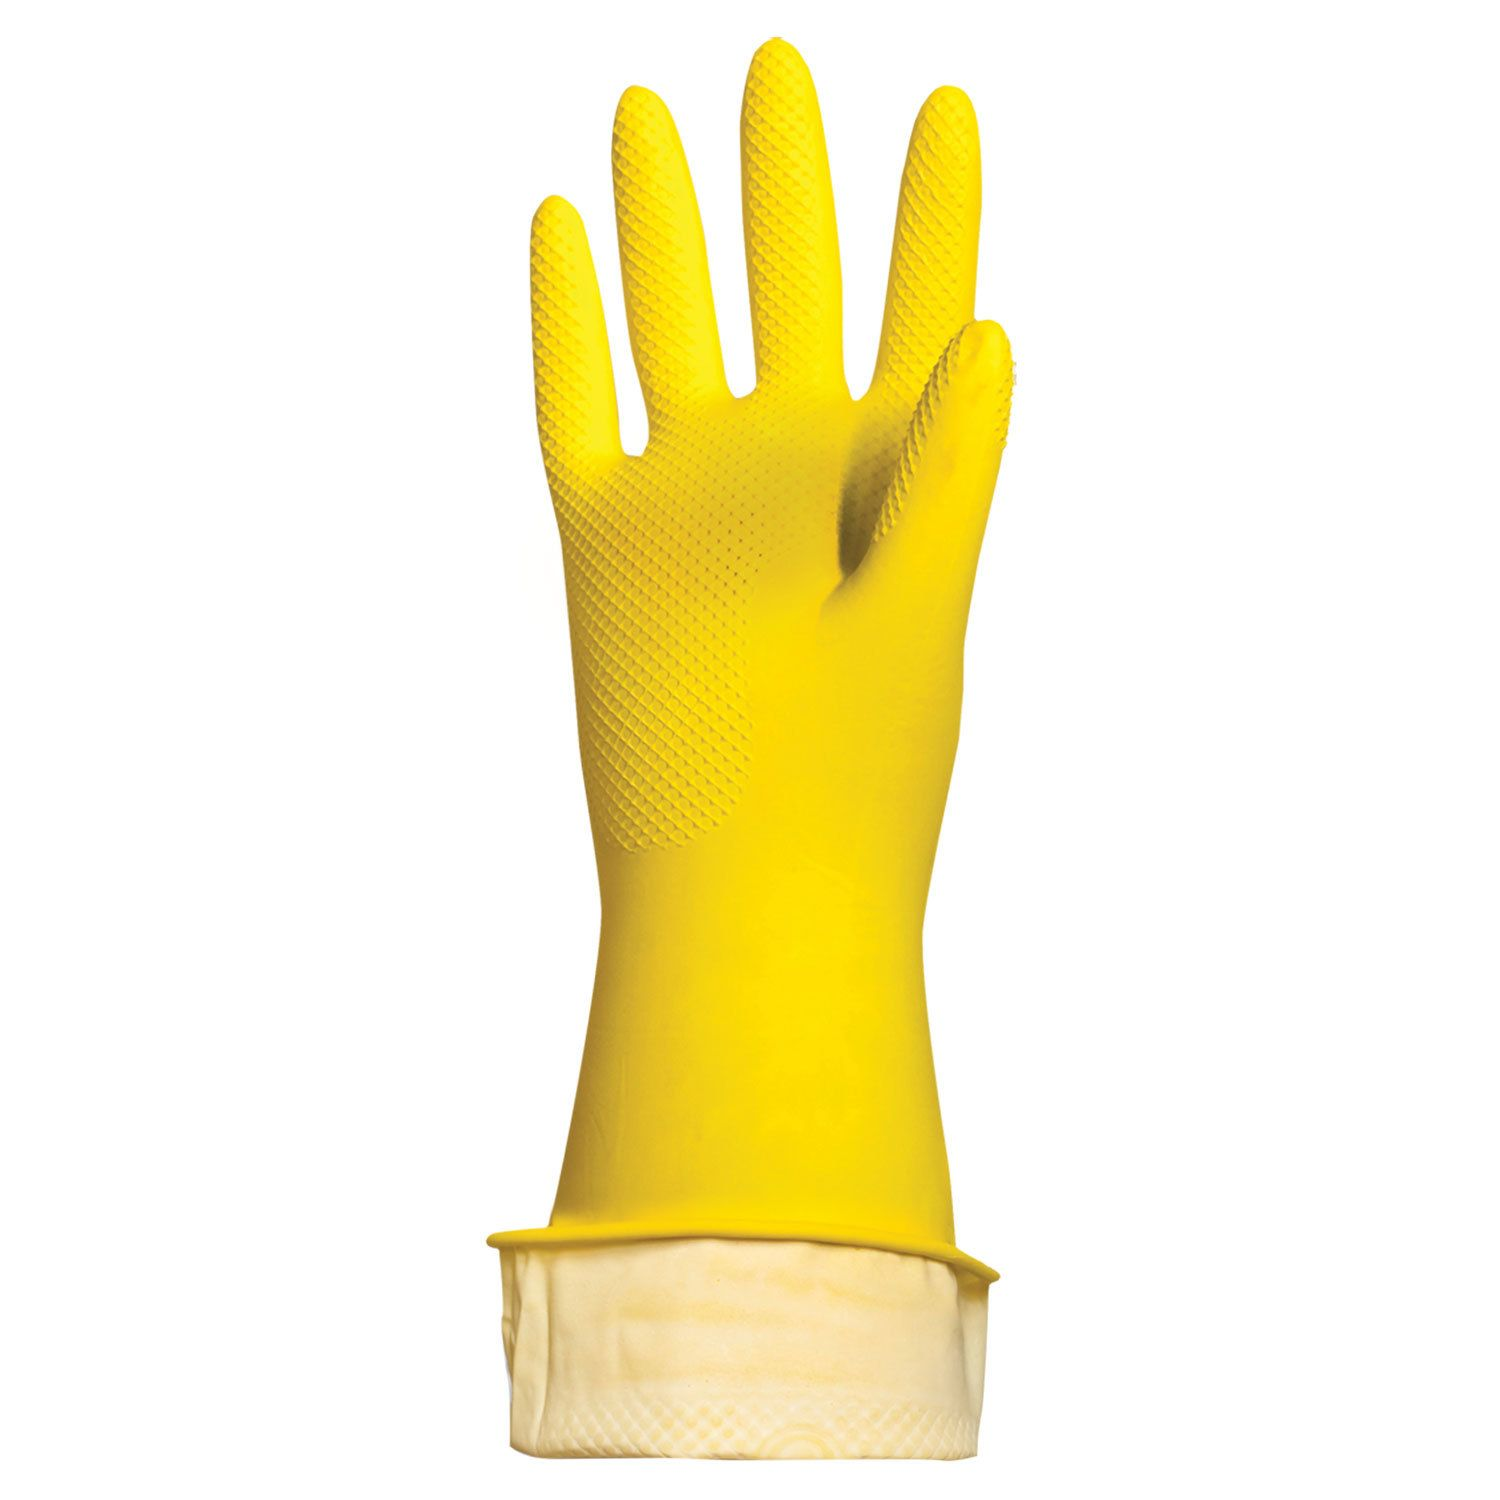 LYUBASHA / Latex household gloves ECONOMY REUSABLE, cotton dusting, size XL (very large)